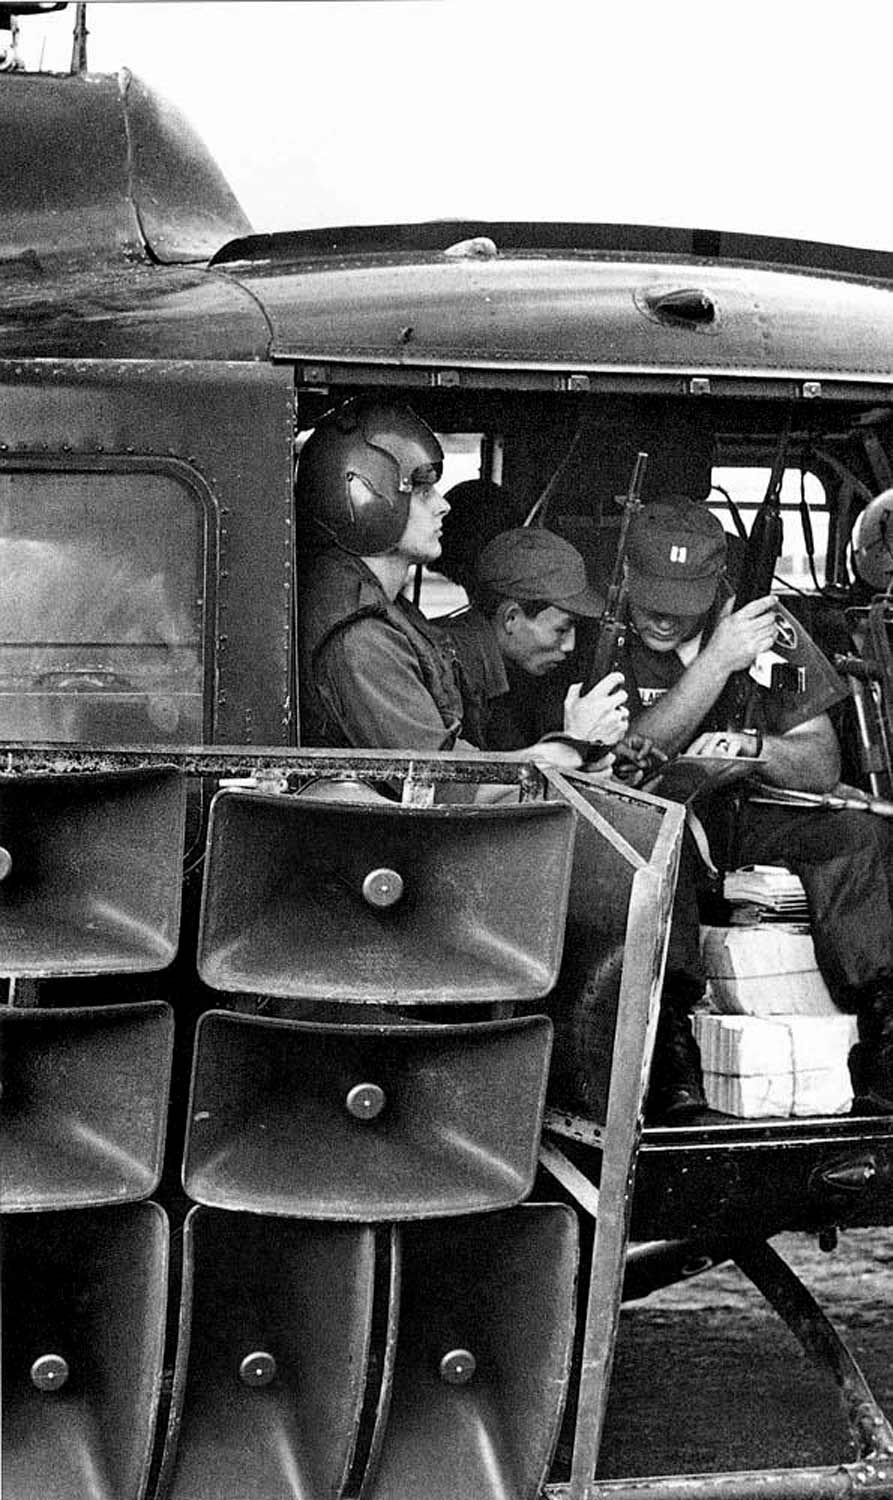 propaganda mission conducted by South Vietnamese and American PSYOP soldiers. Piles of leaflets are visible near the helicopter door.Image courtesy of  http://www.psywarrior.com